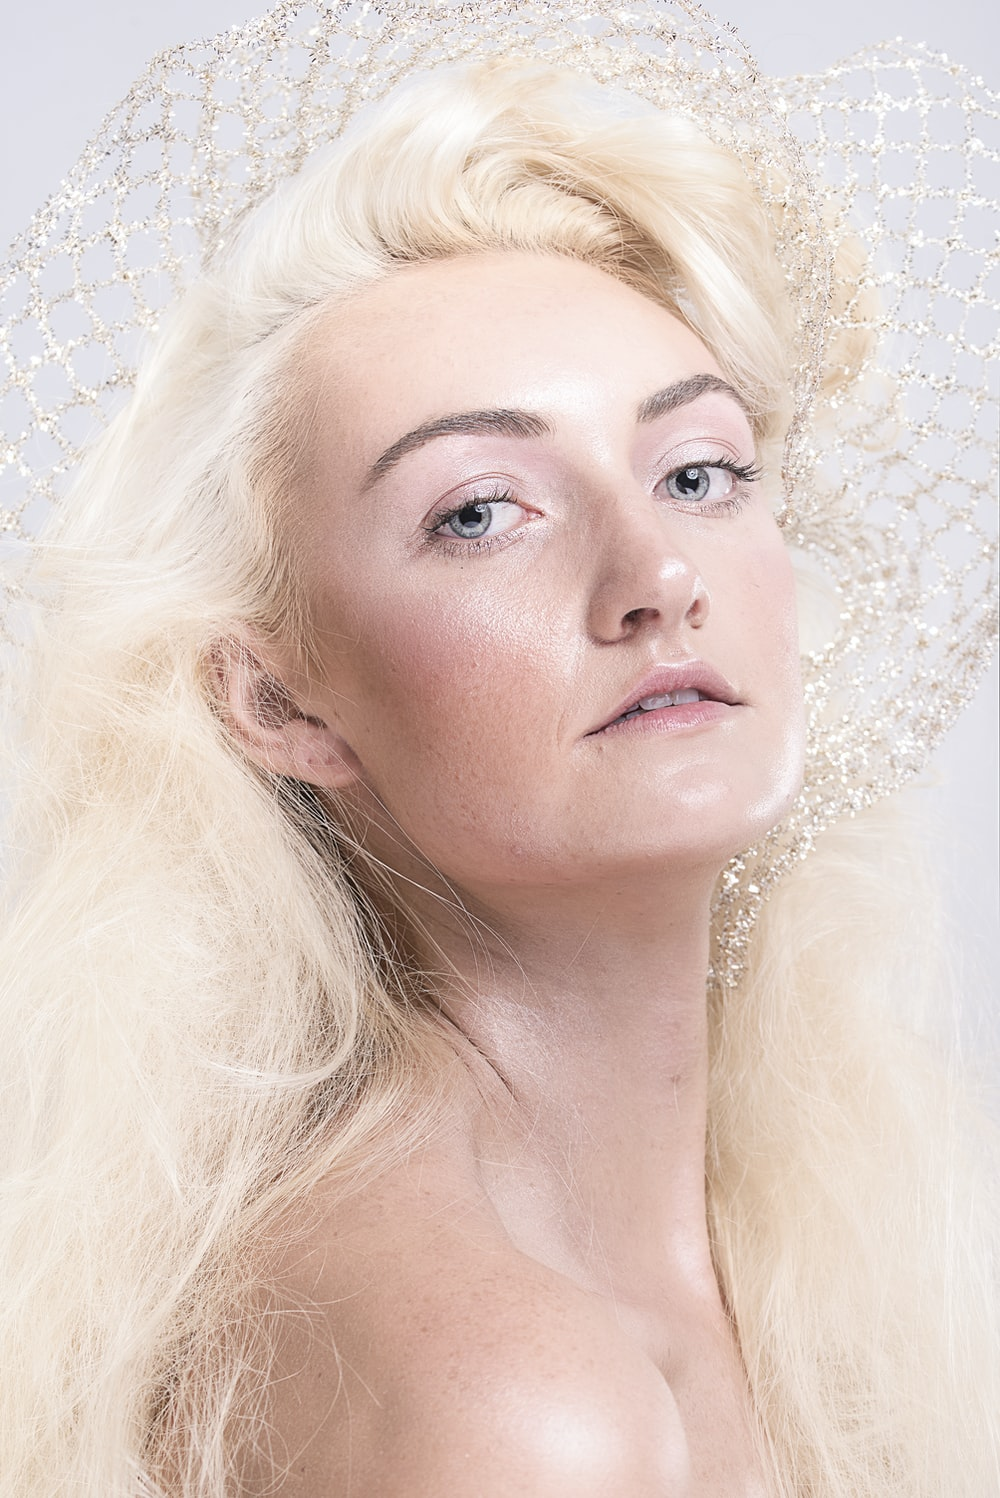 woman with blonde hair and white pearl earrings